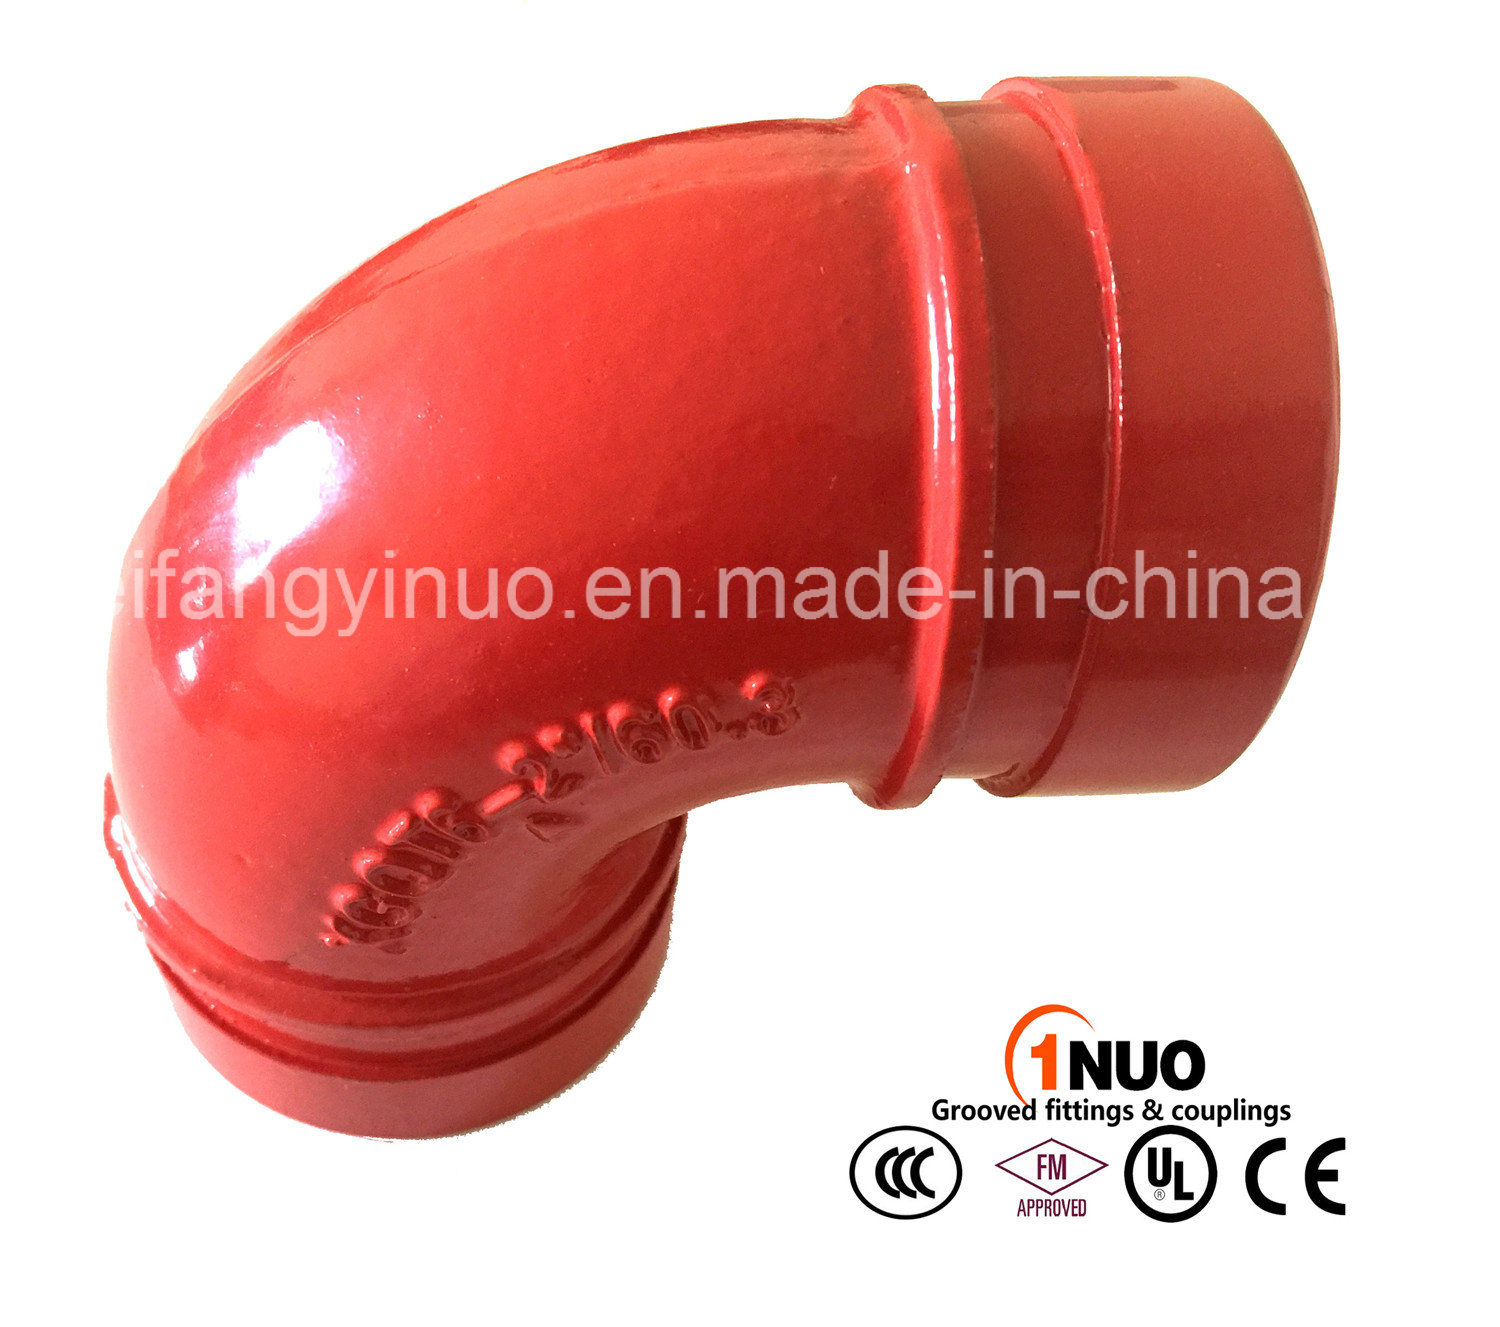 Ductile Iron Best Quality/ Price Grooved 45 Degree Elbow with FM/UL